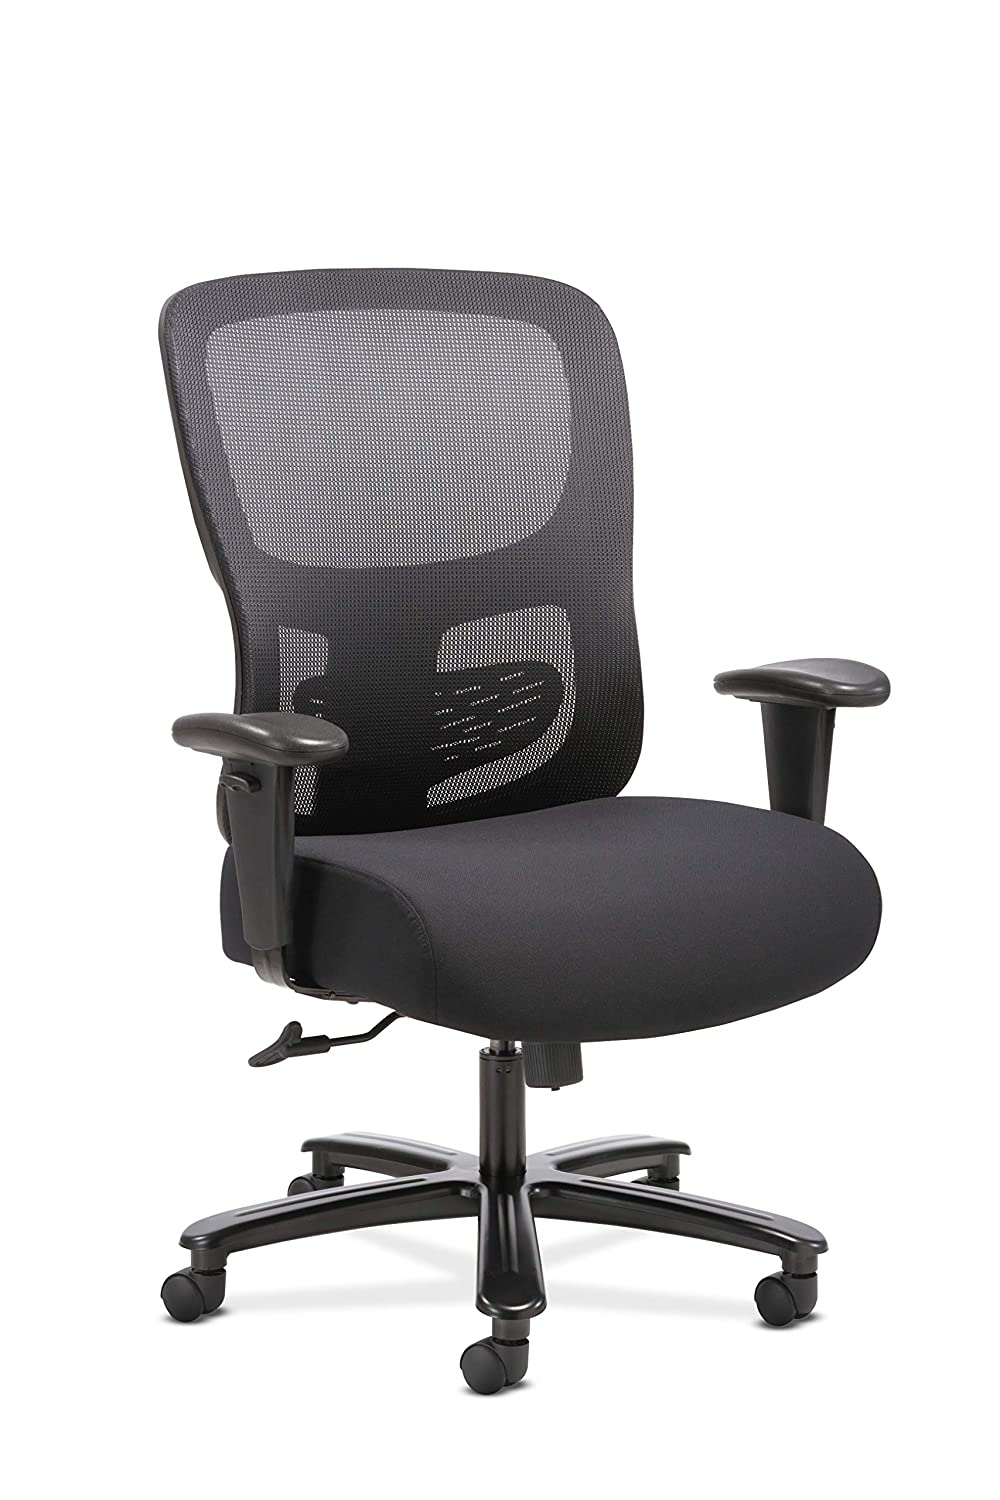 Hon Sadie Big And Tall Office Computer Chair - Heavy Duty Office Chairs 400lbs